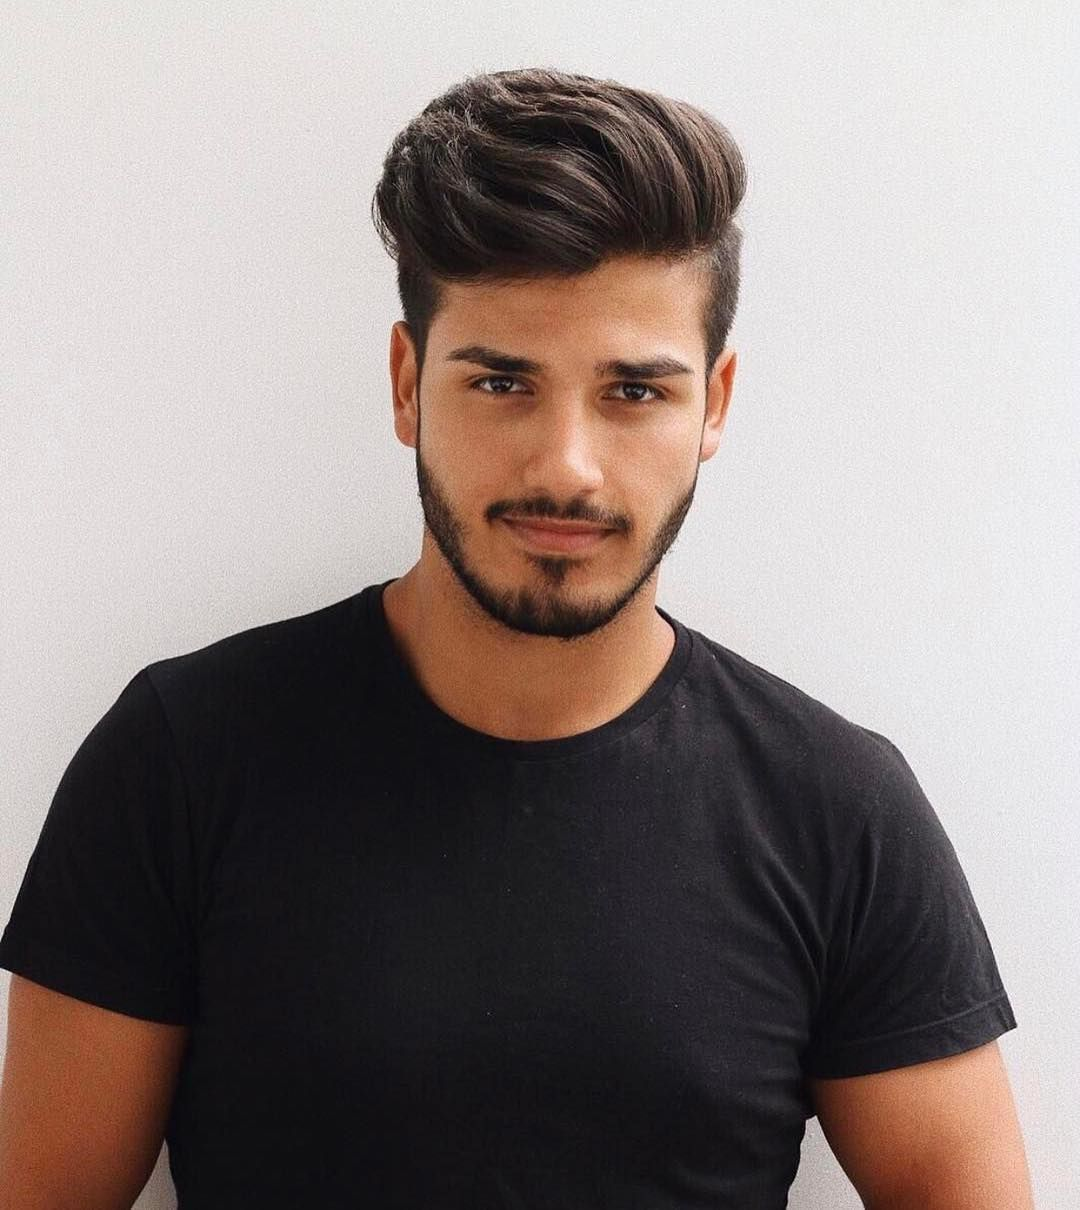 6 582 Me Gusta 10 Comentarios Hairmenstyle Official Hairmenstyle En Instagram Use Hairmenstyle Cool Hairstyles Gents Hair Style Men Haircut Styles